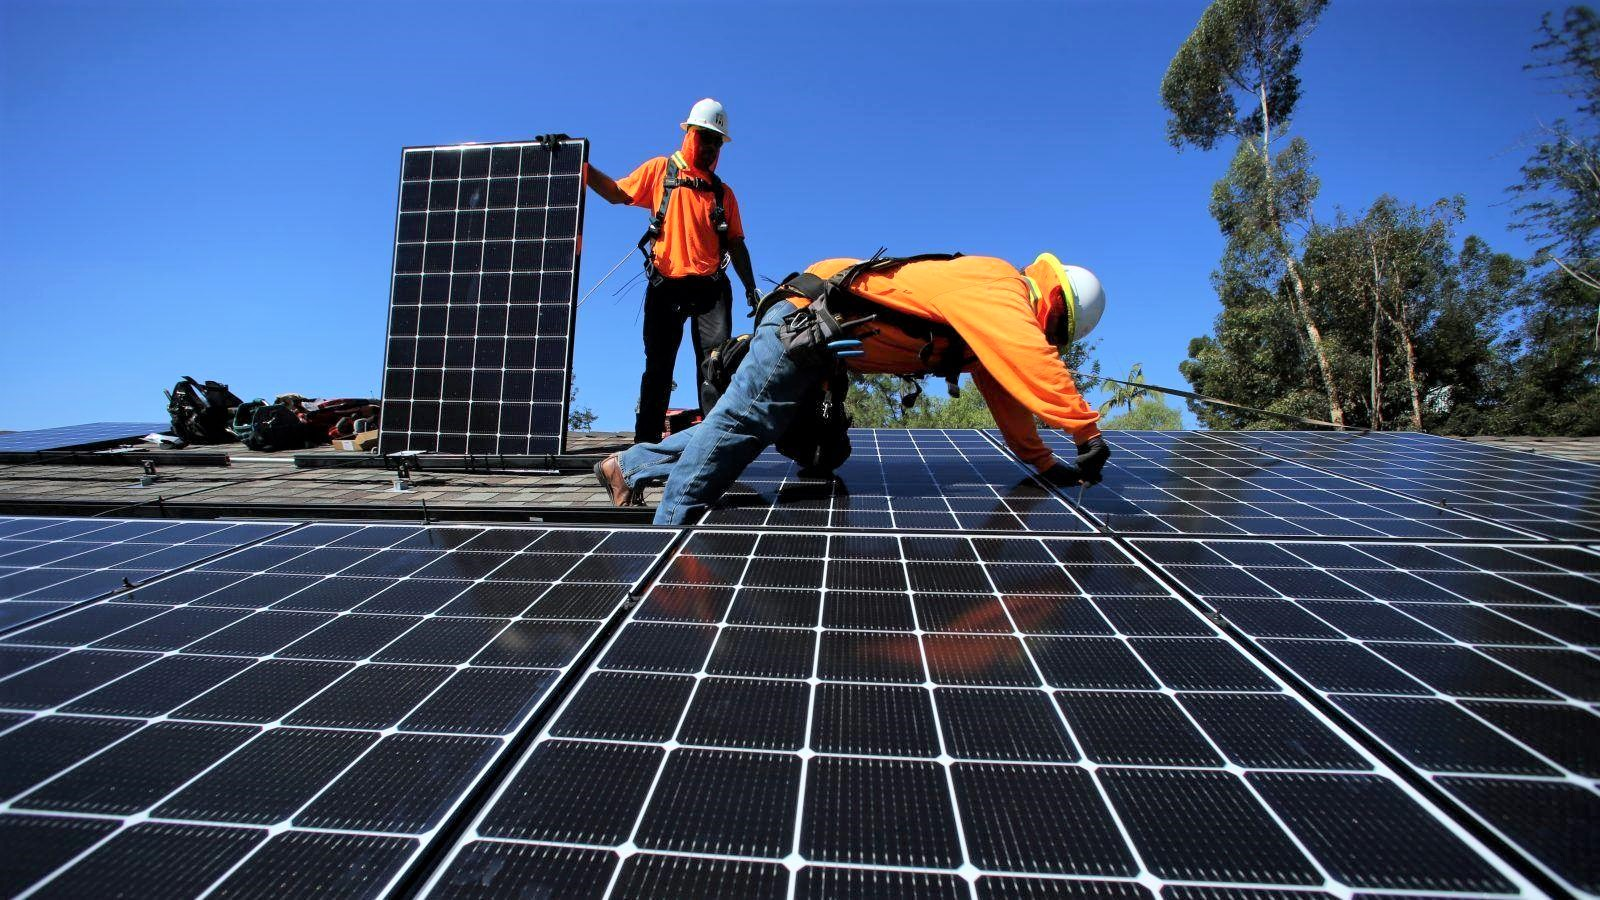 California S New Building Codes Will Make Solar Panels The